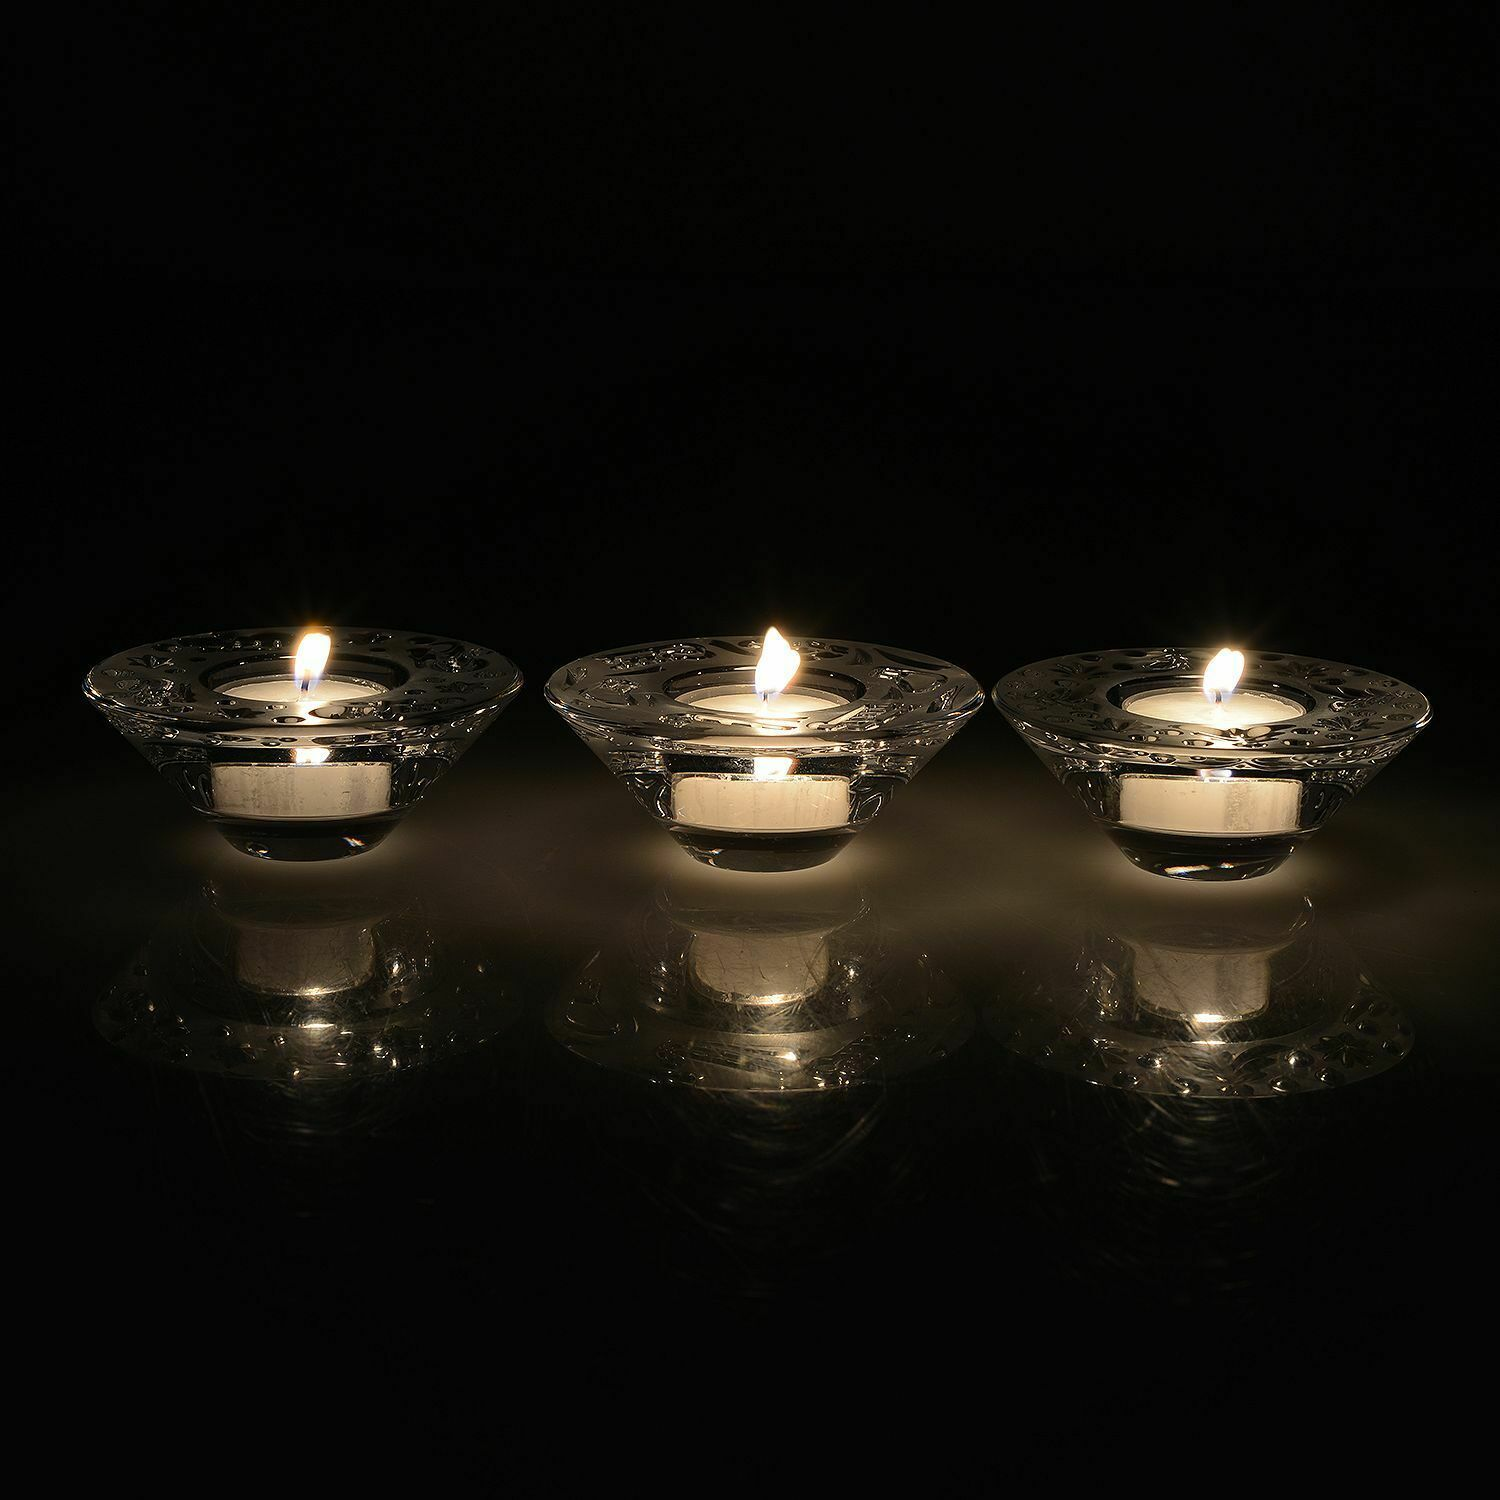 Waterford Christmas Holiday Votive Set of 3 NEW #40032804 Packaged separately